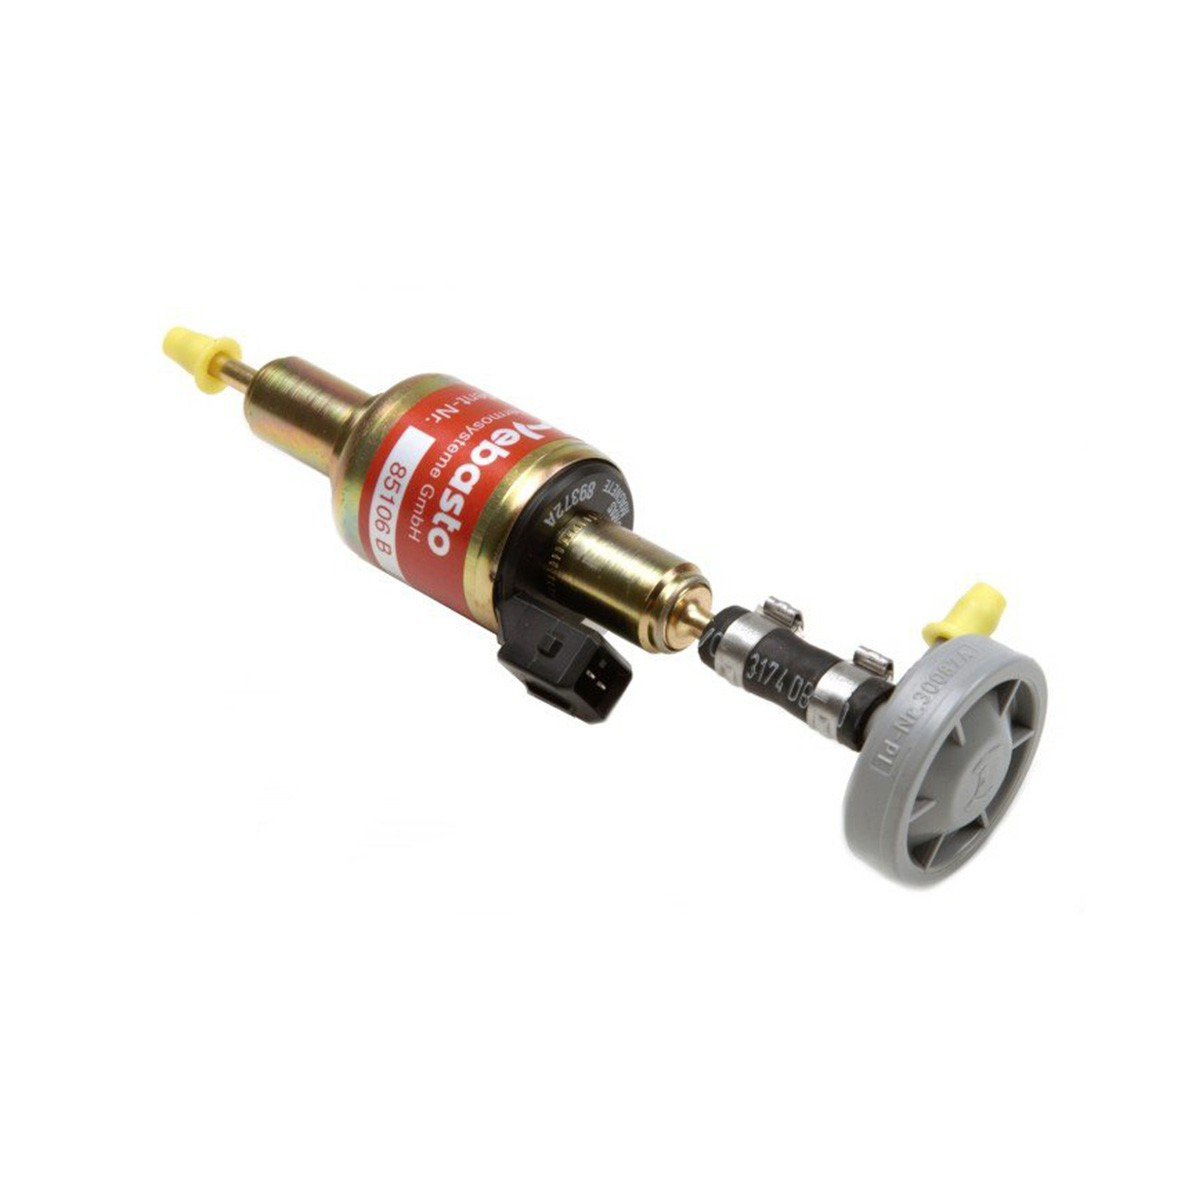 Webasto Fuel pump DP30.2 24v 1322422A